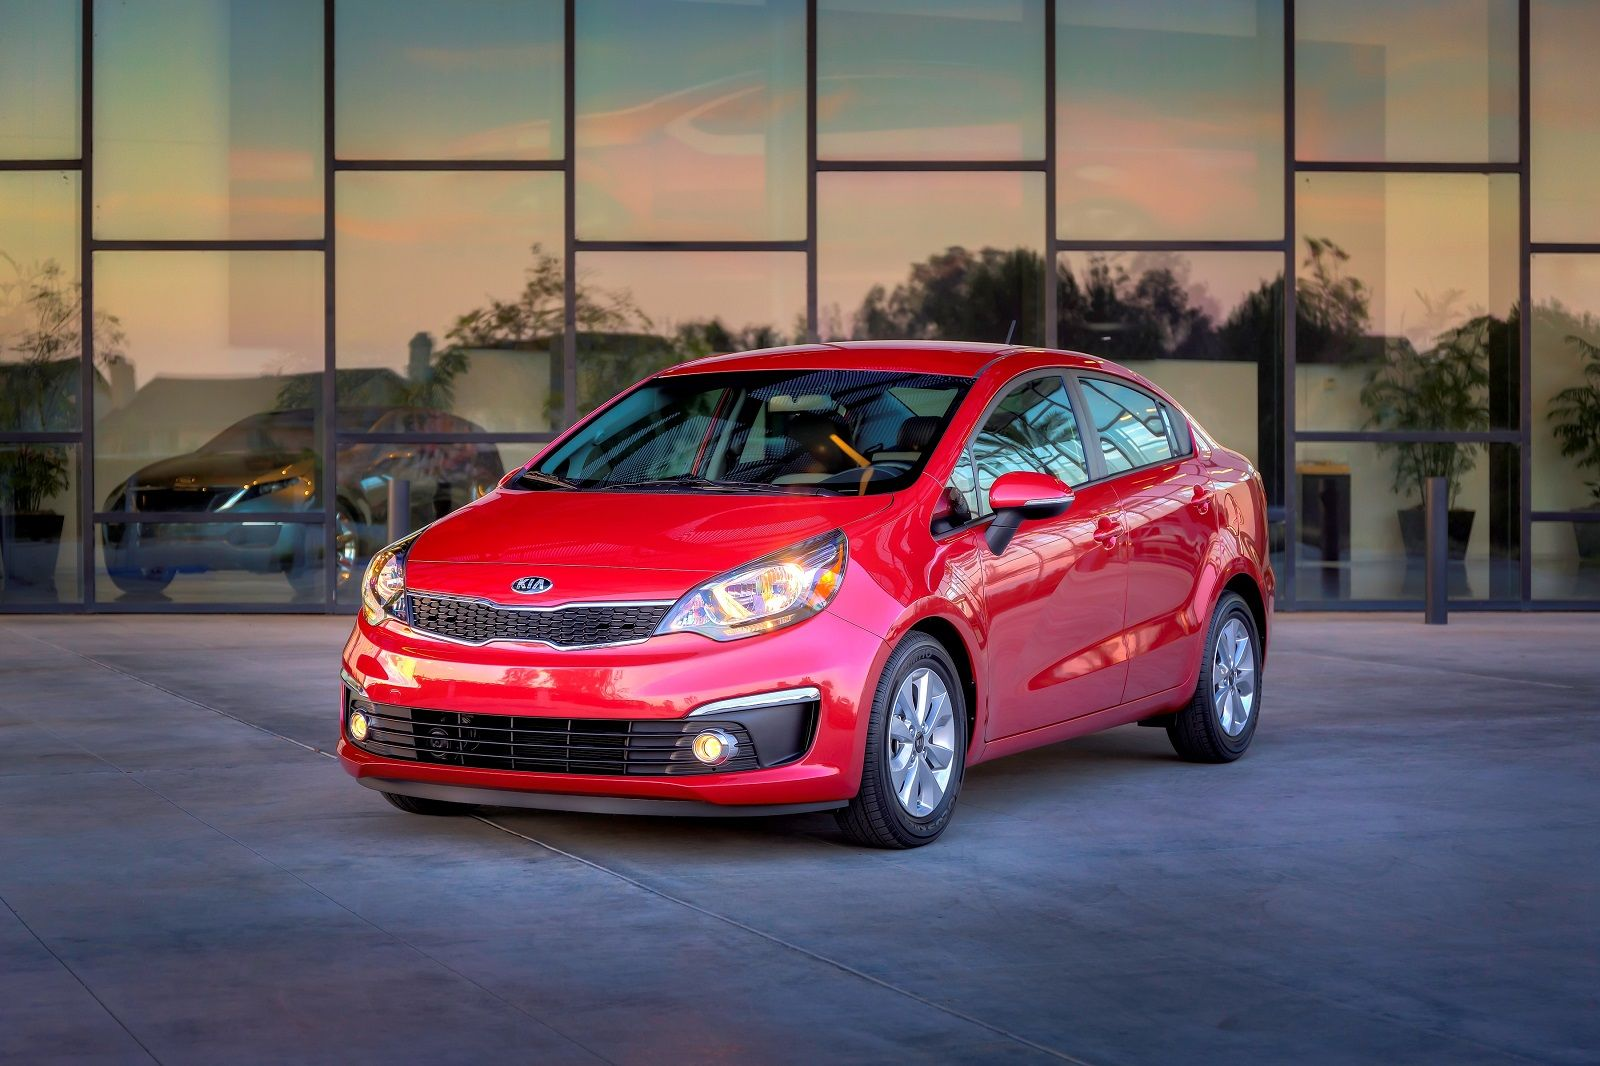 Get the latest reviews of the 2016 Kia Rio. Find prices